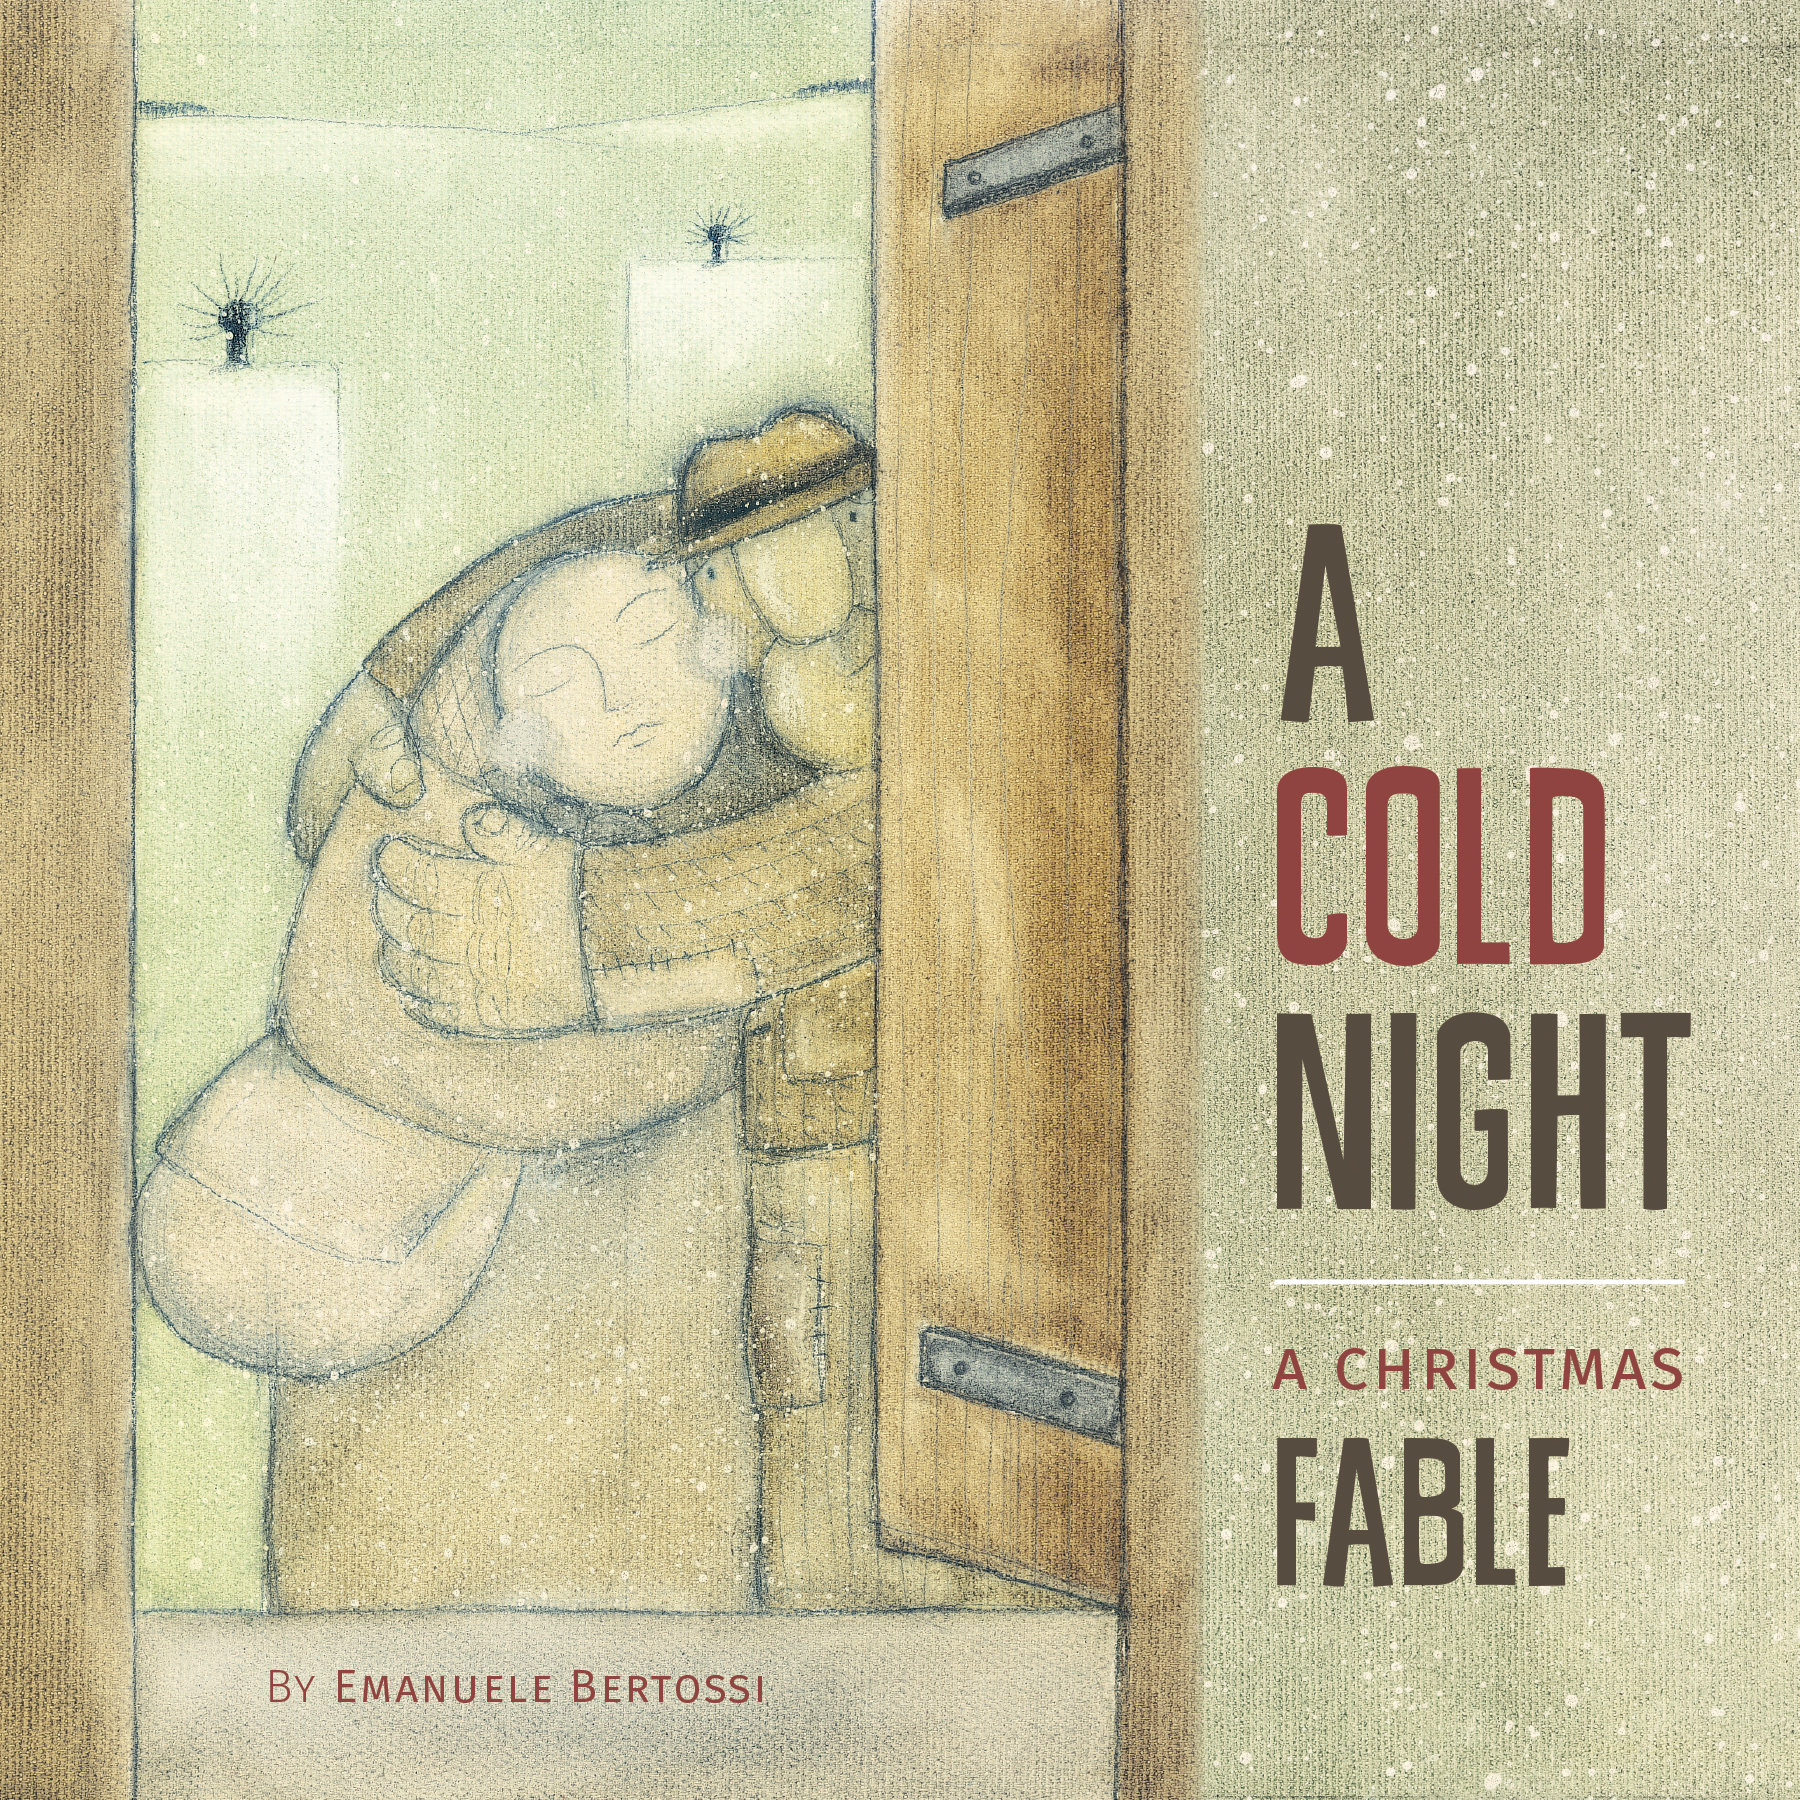 A Cold Night: A Christmas Fable